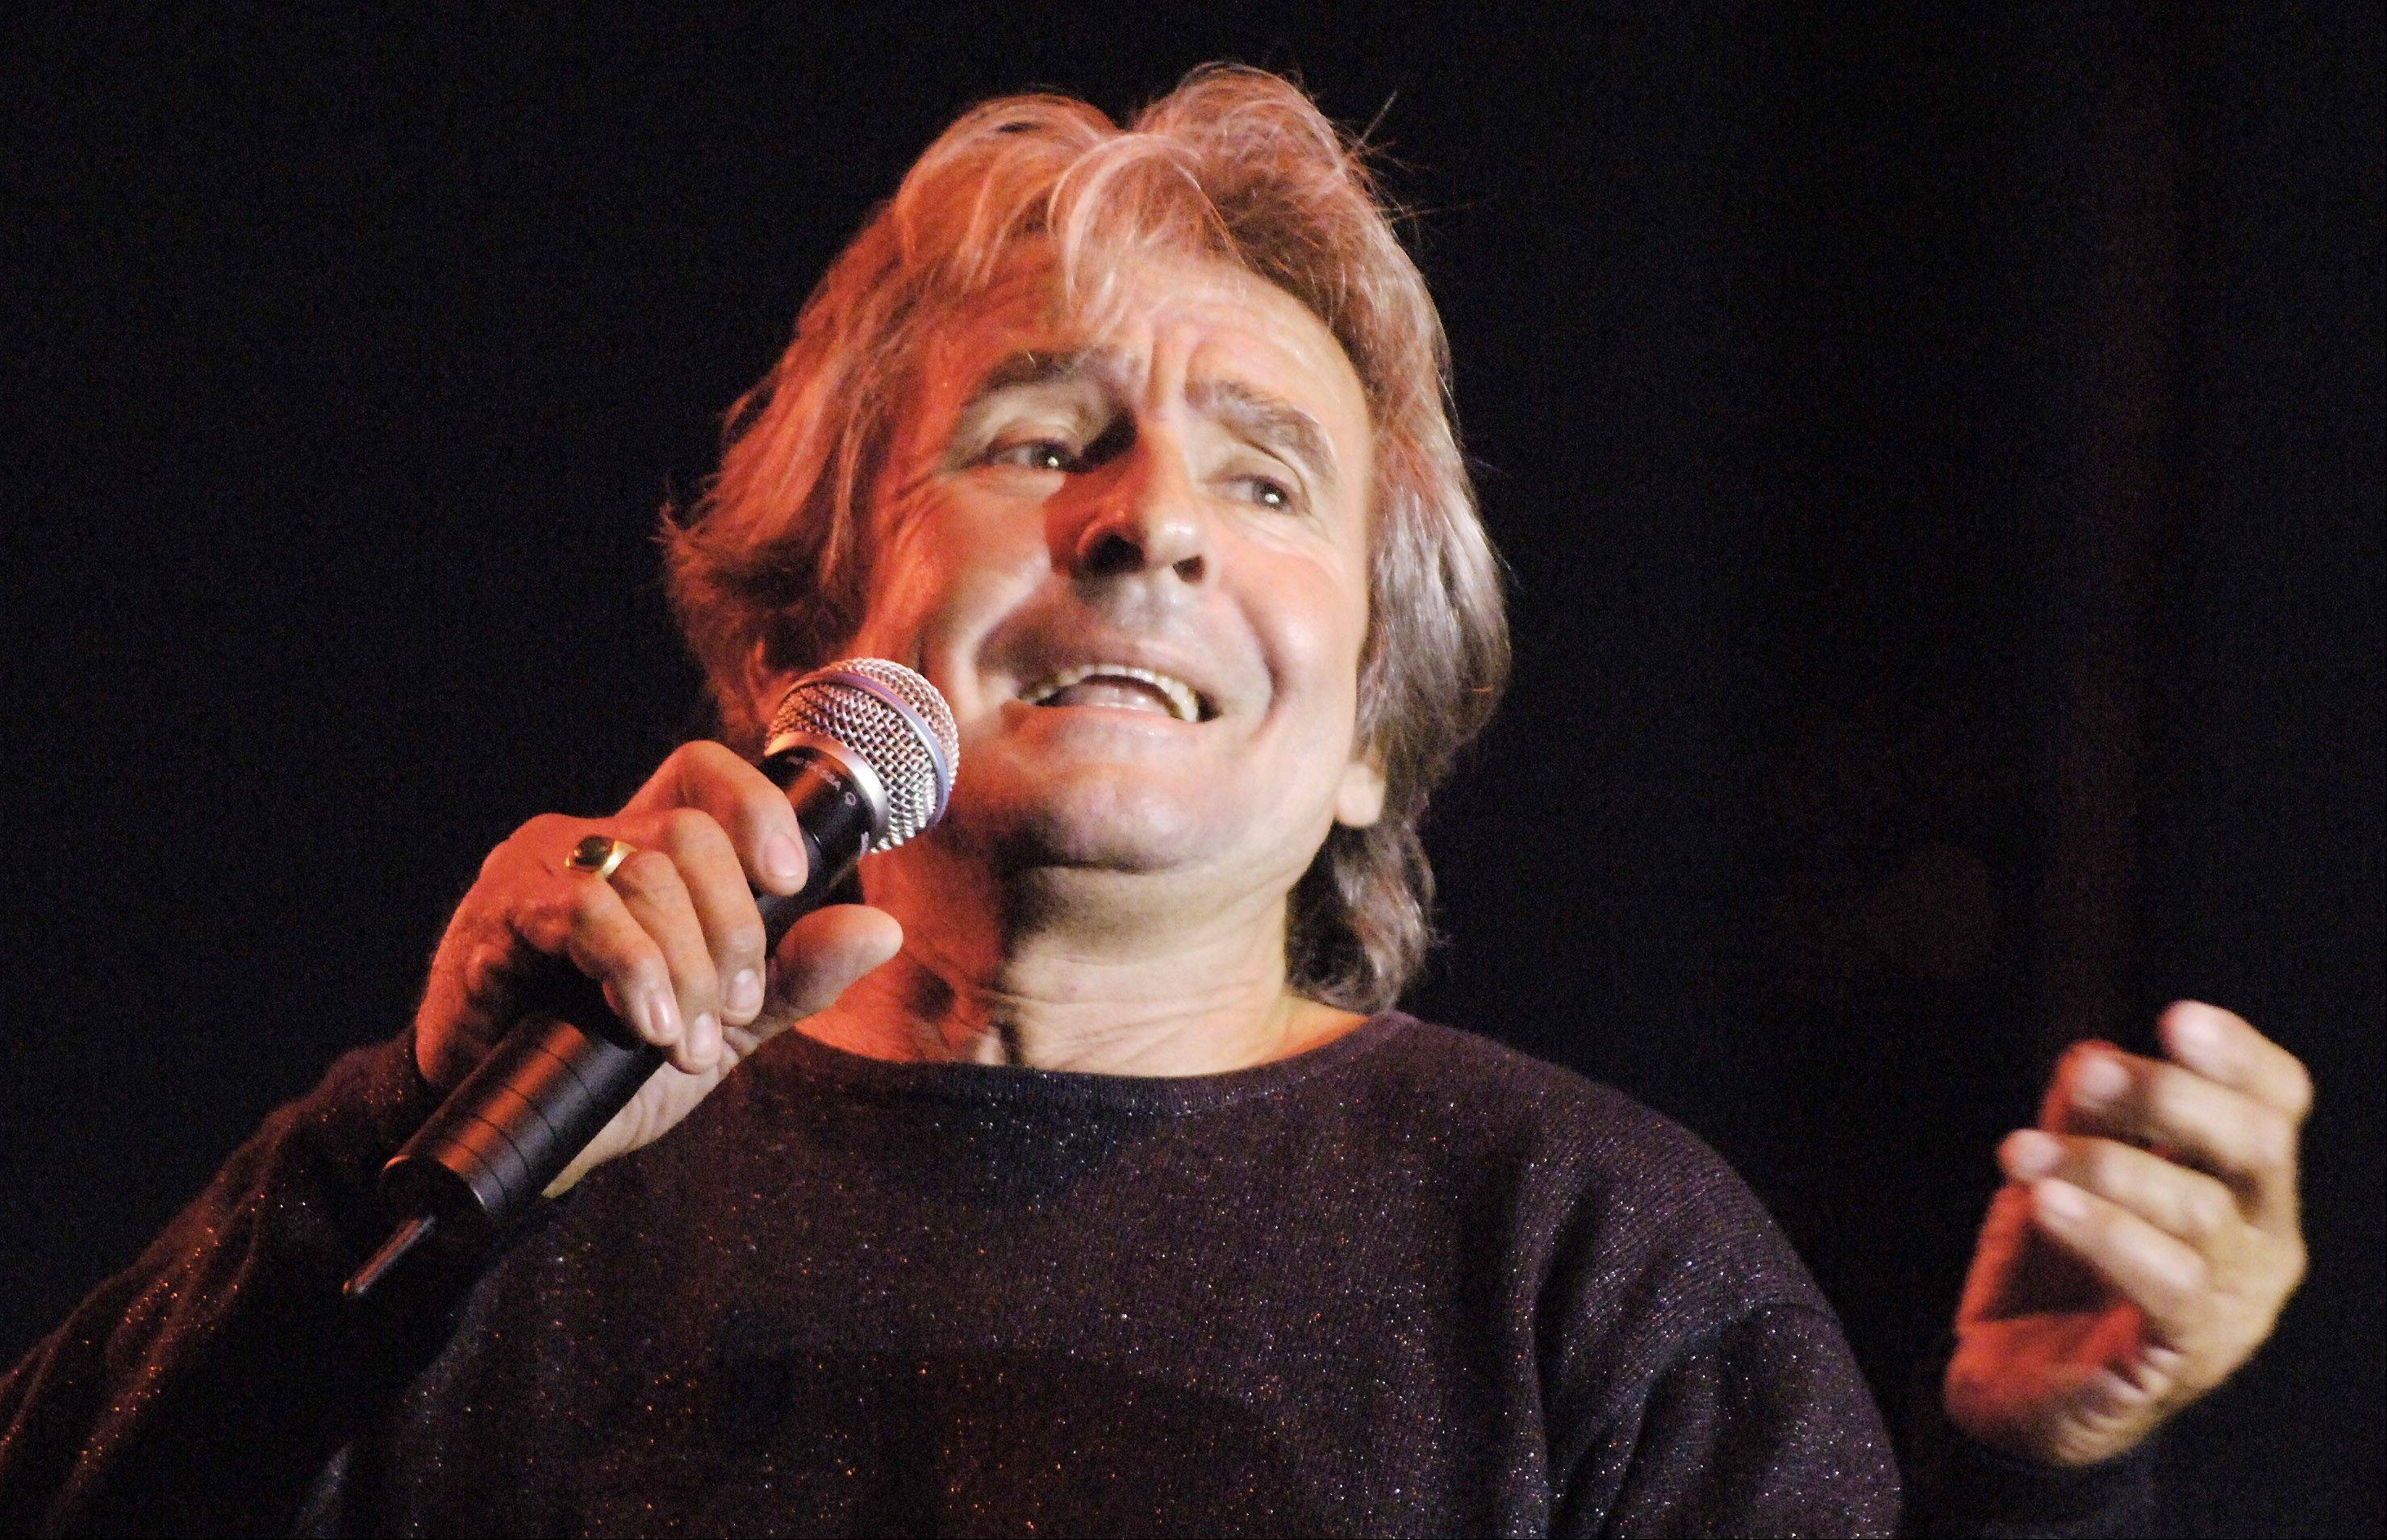 Davy Jones infuses old songs with new energy